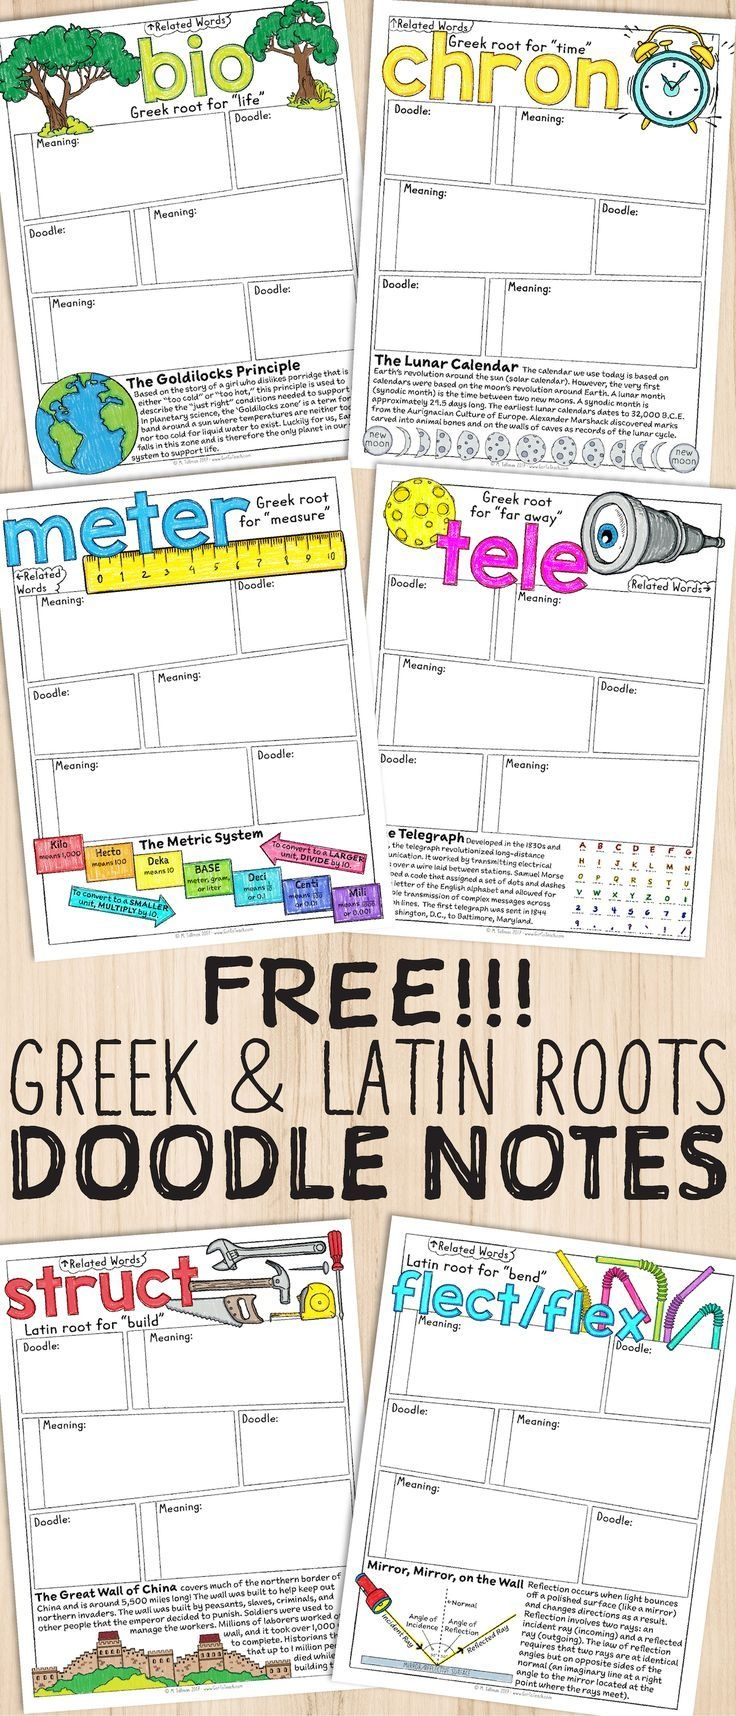 Free Greek And Latin Roots Sketch Notes   Literacy Teaching - Free Printable Greek And Latin Roots